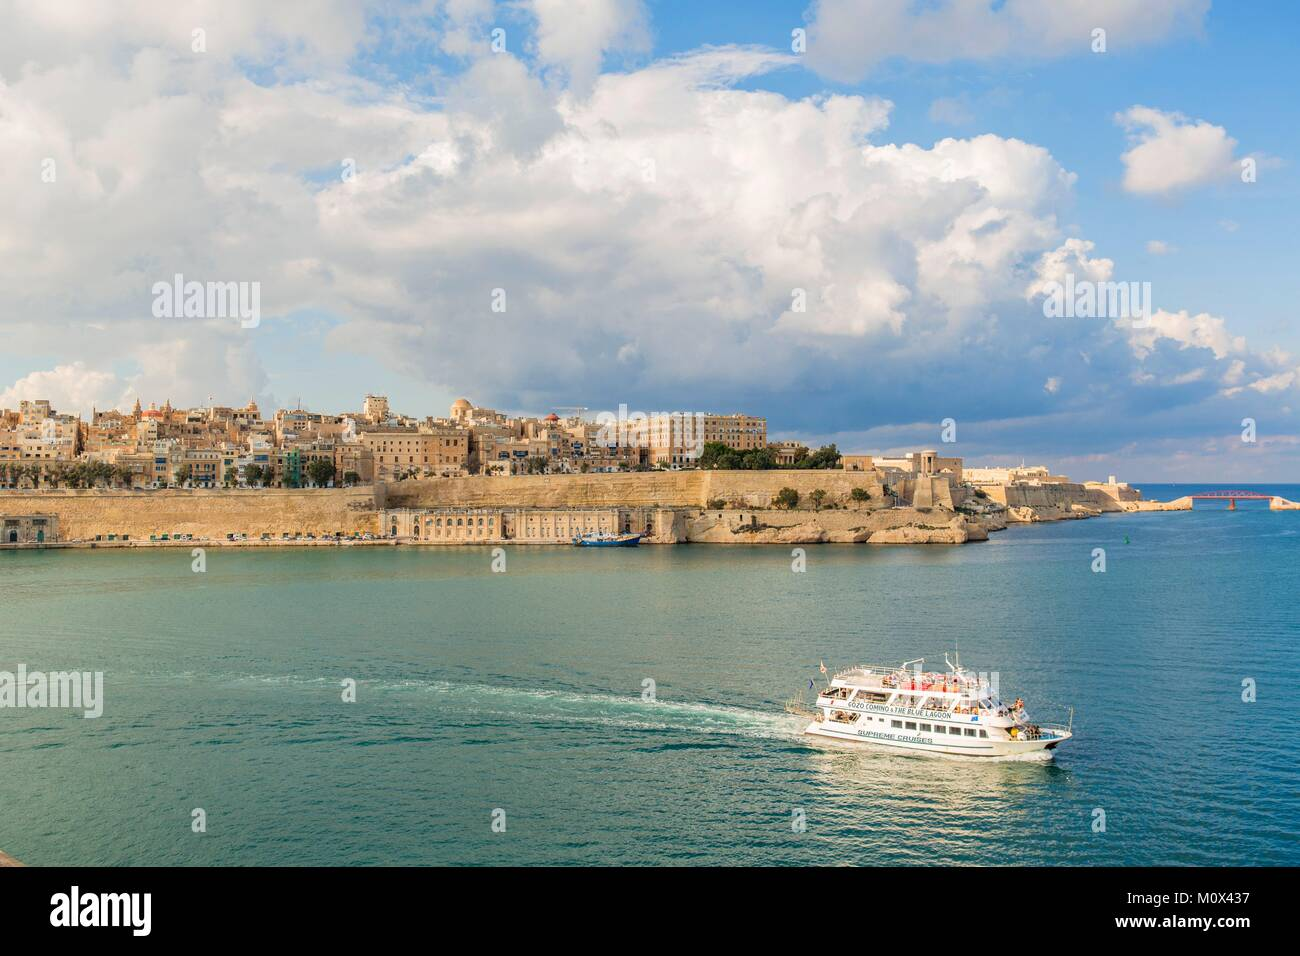 Malta,Valletta,listed as World Heritage by UNESCO,Grand HarbourStock Photo